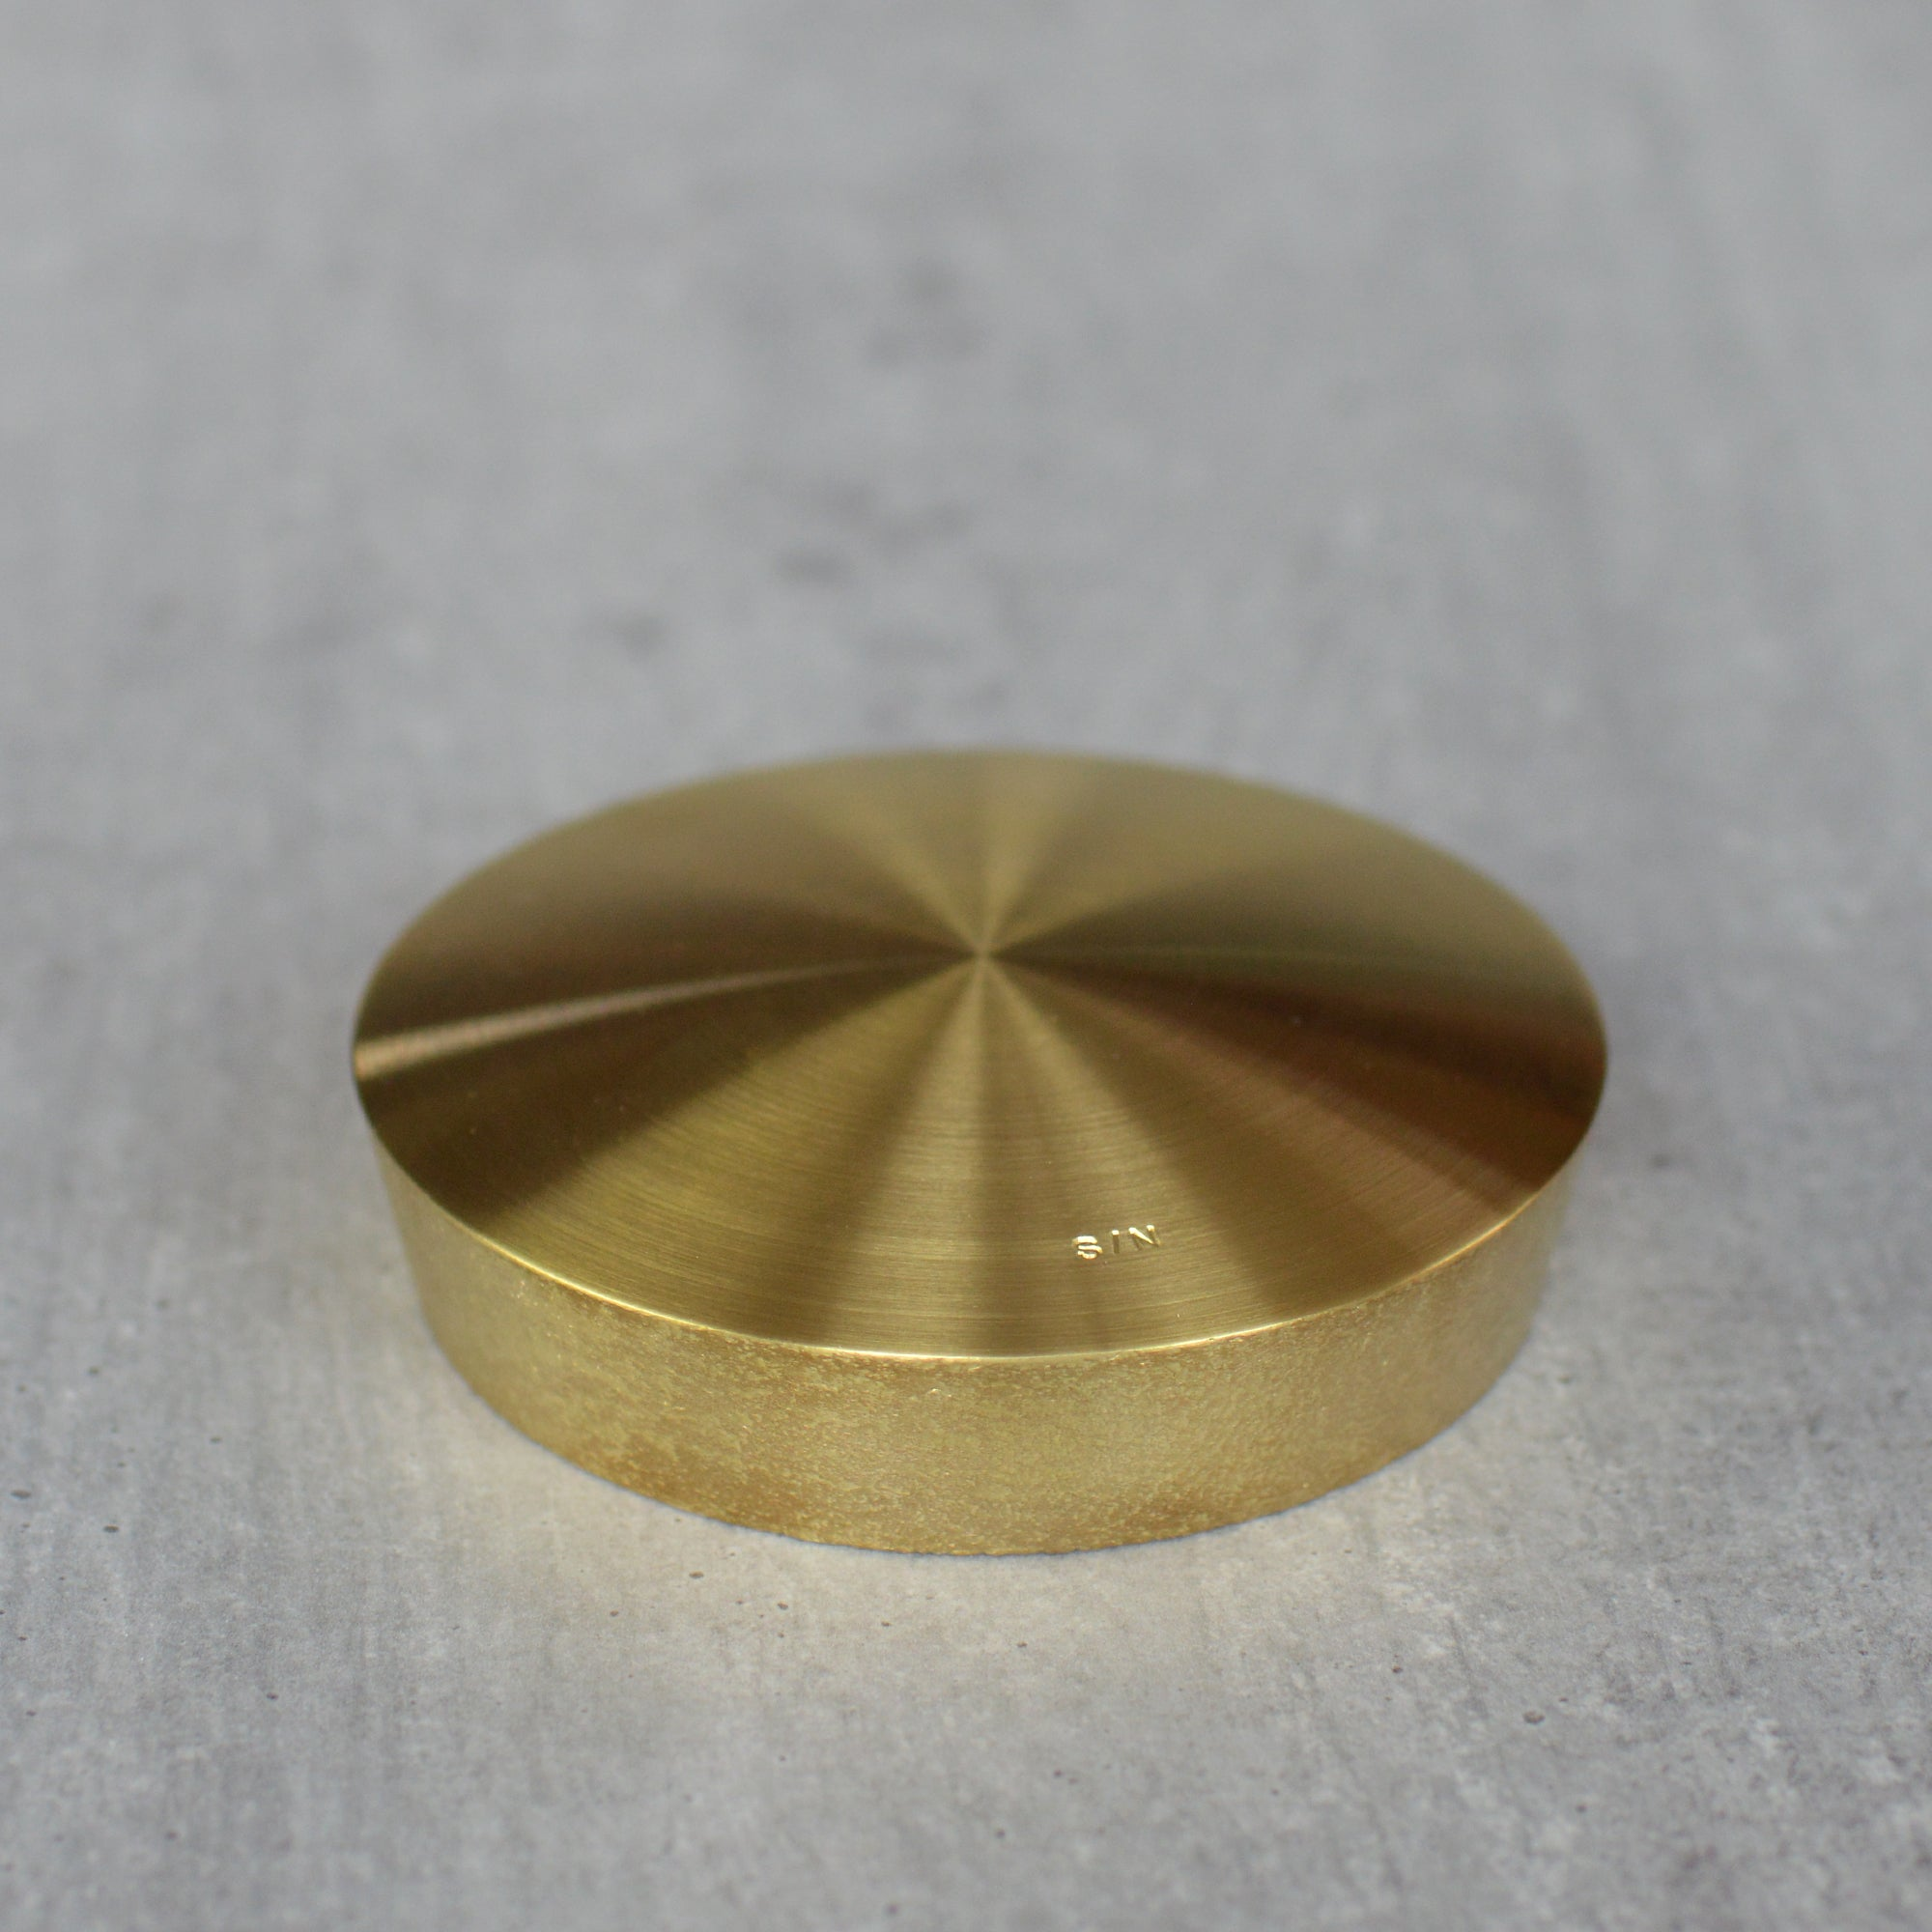 Brass Clip Holder by Taku Shinomoto